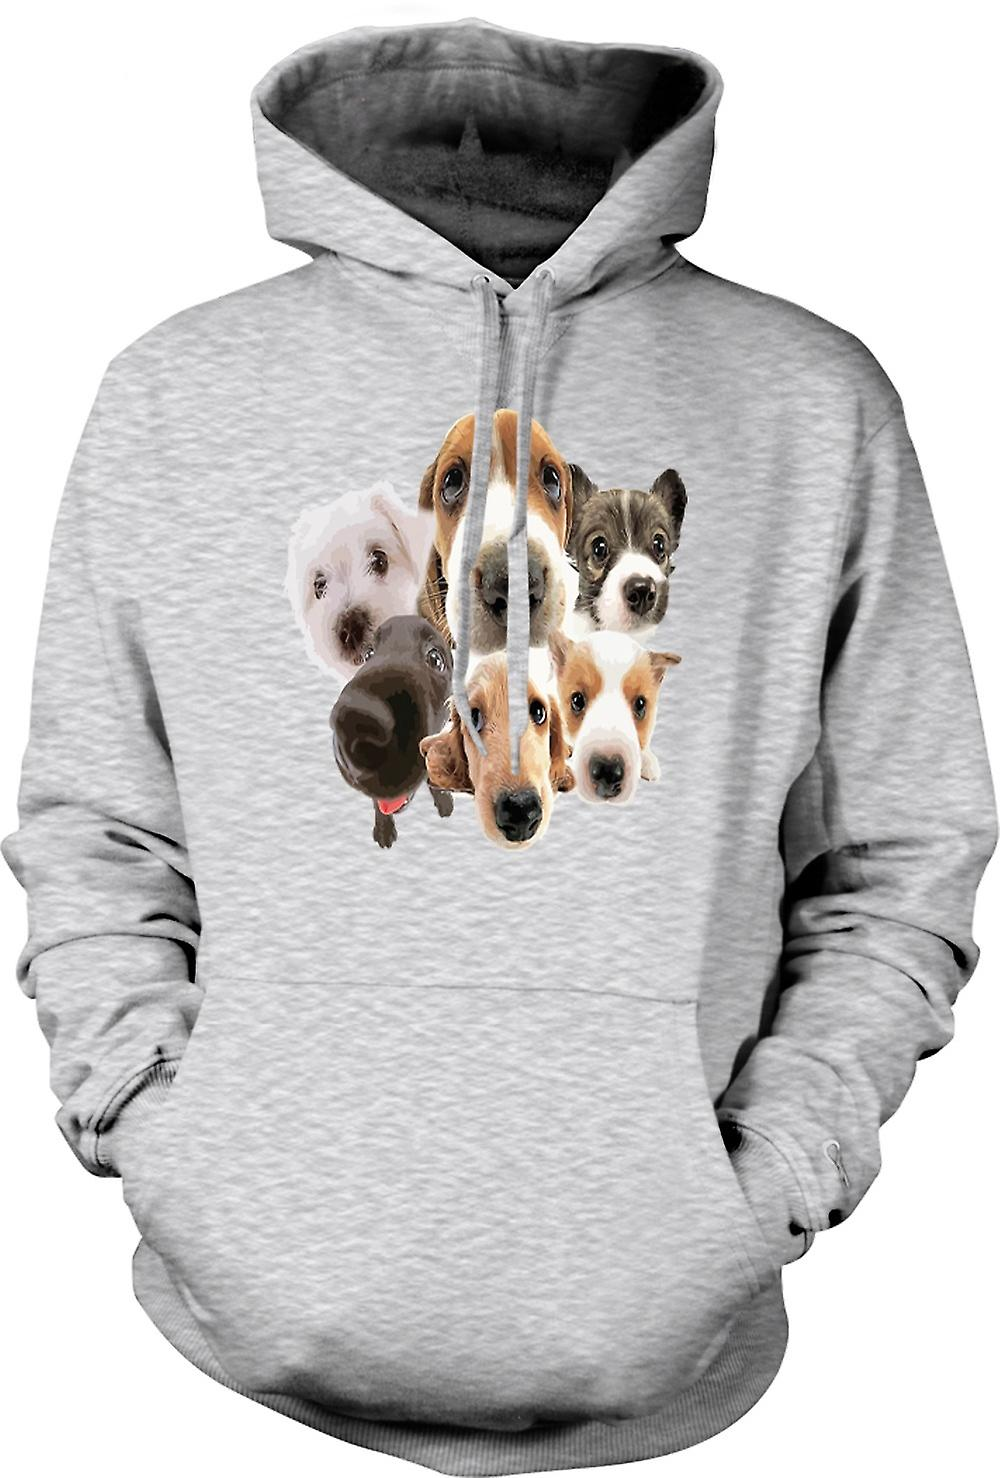 Mens Hoodie - Pet Dog Faces Collage - Cute